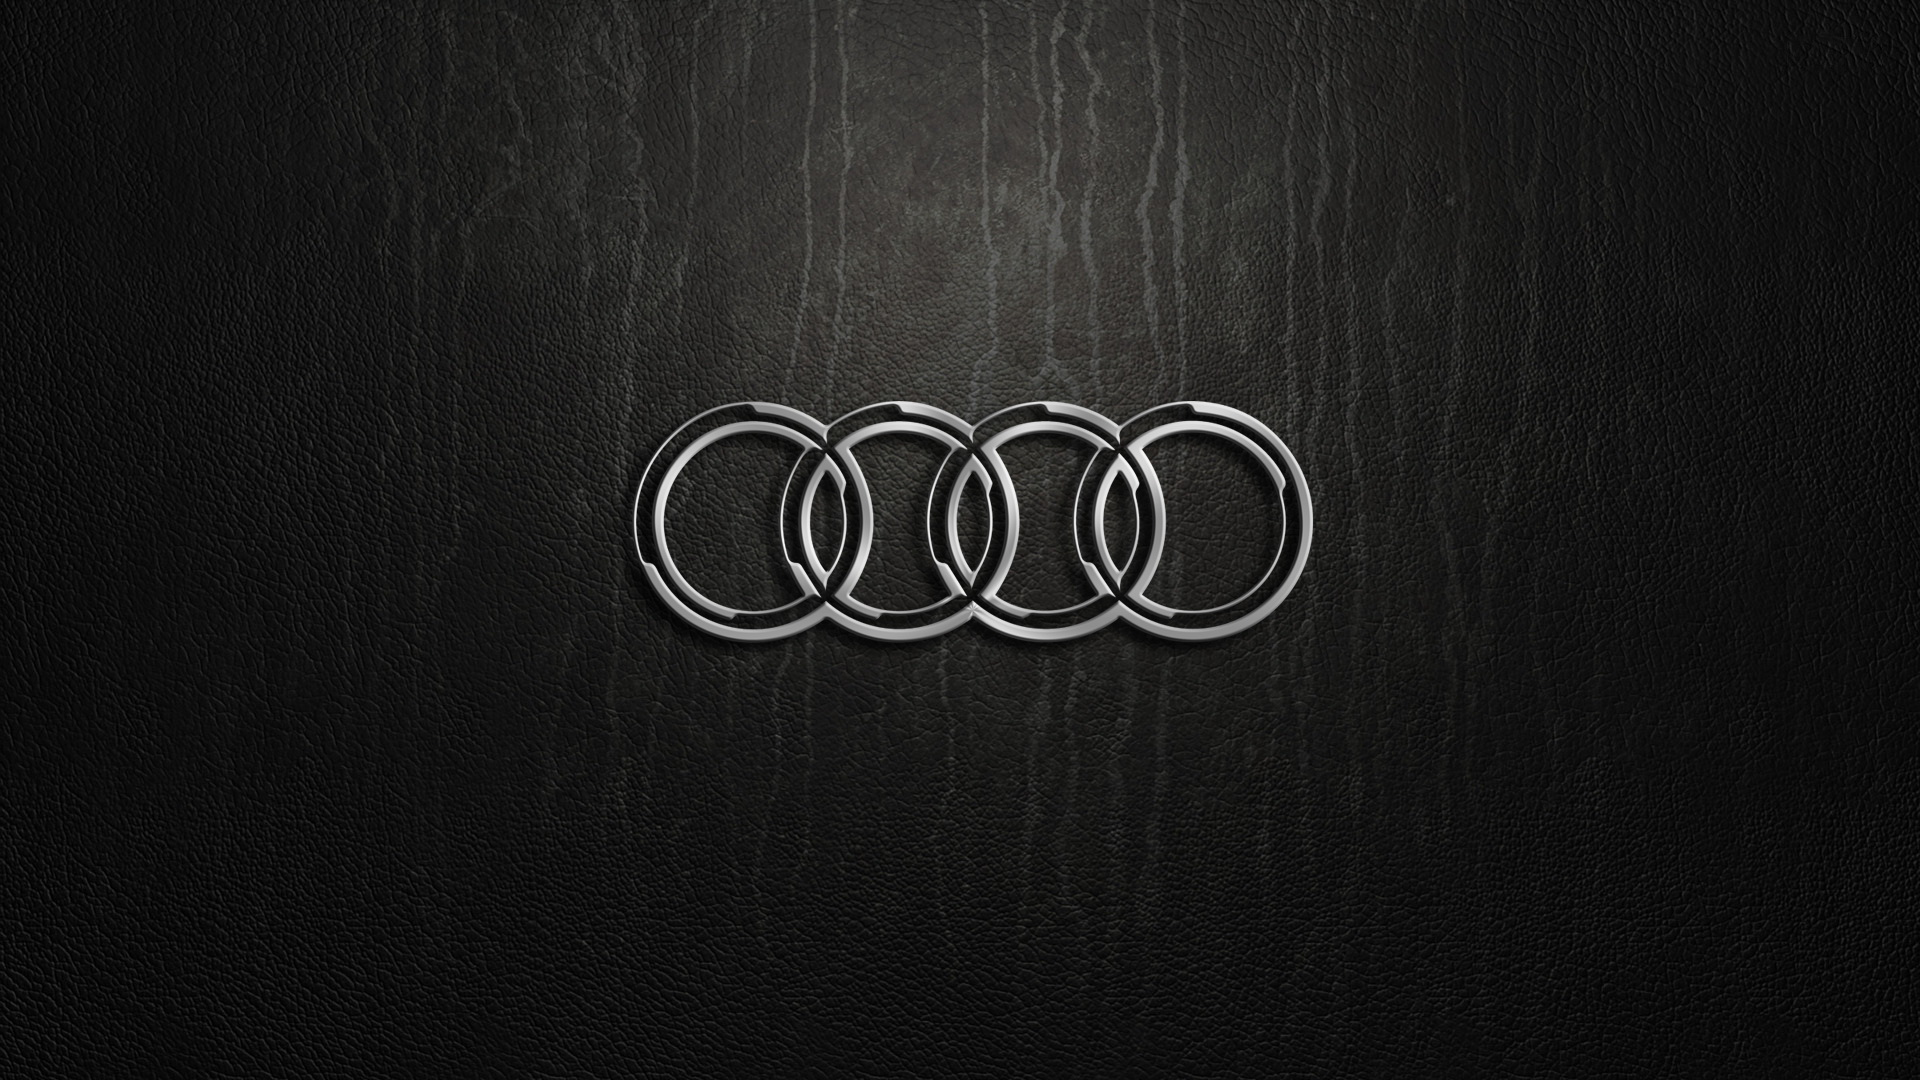 audi car logo black widescreen computer background 1076